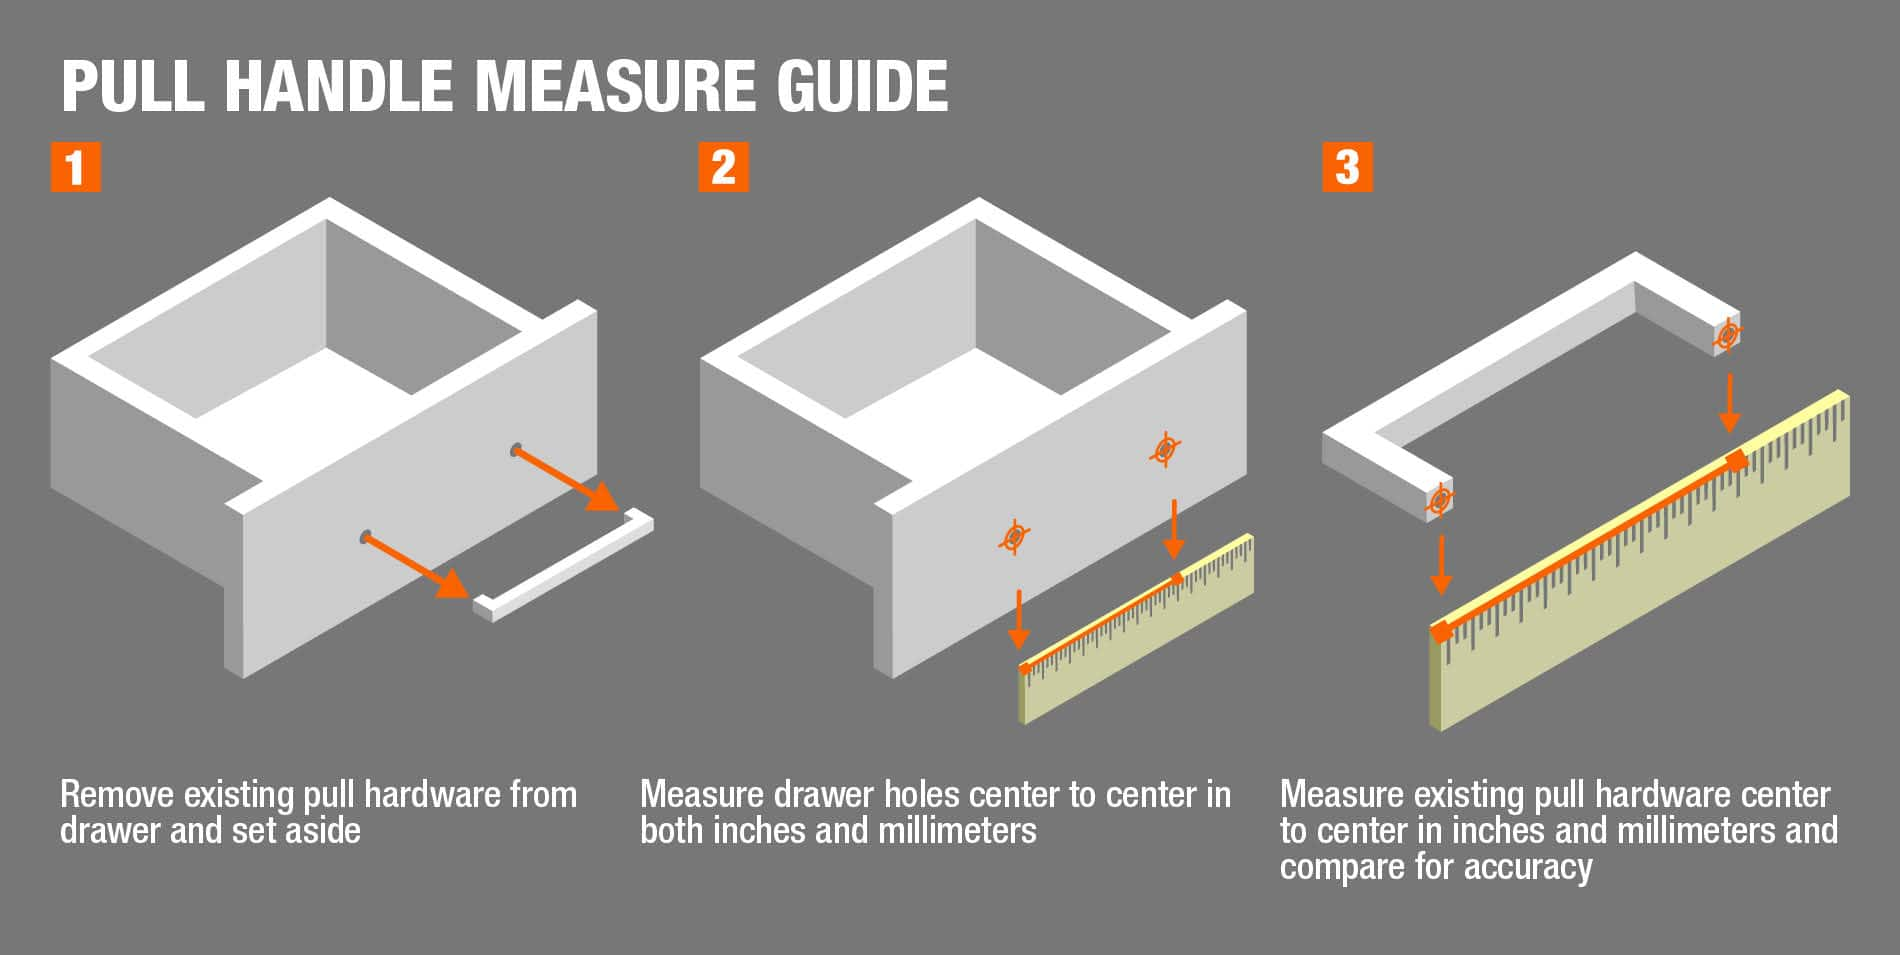 Pull Handle Measure Guide